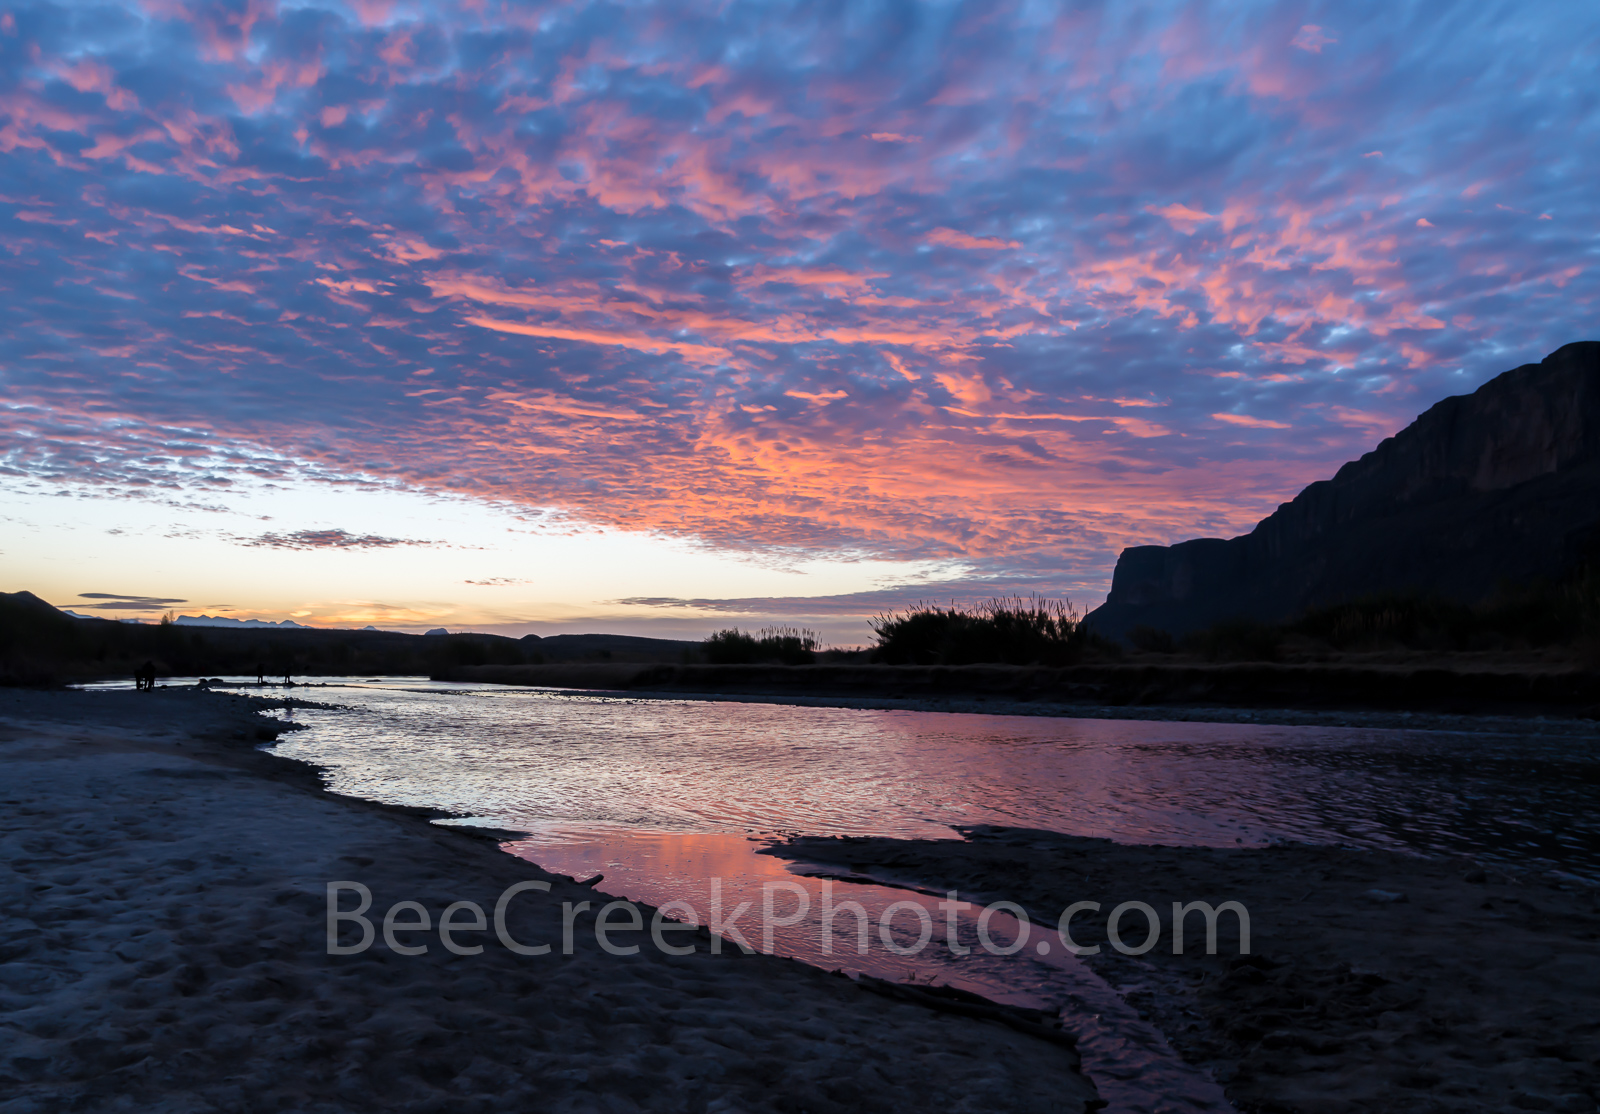 Big Bend National Park, sunrise, pre-sunrise, Rio Grande, Santa Elena Canyon, colors, mroning sky, clouds, underlight, pink, waters, Texas landscape,  , photo